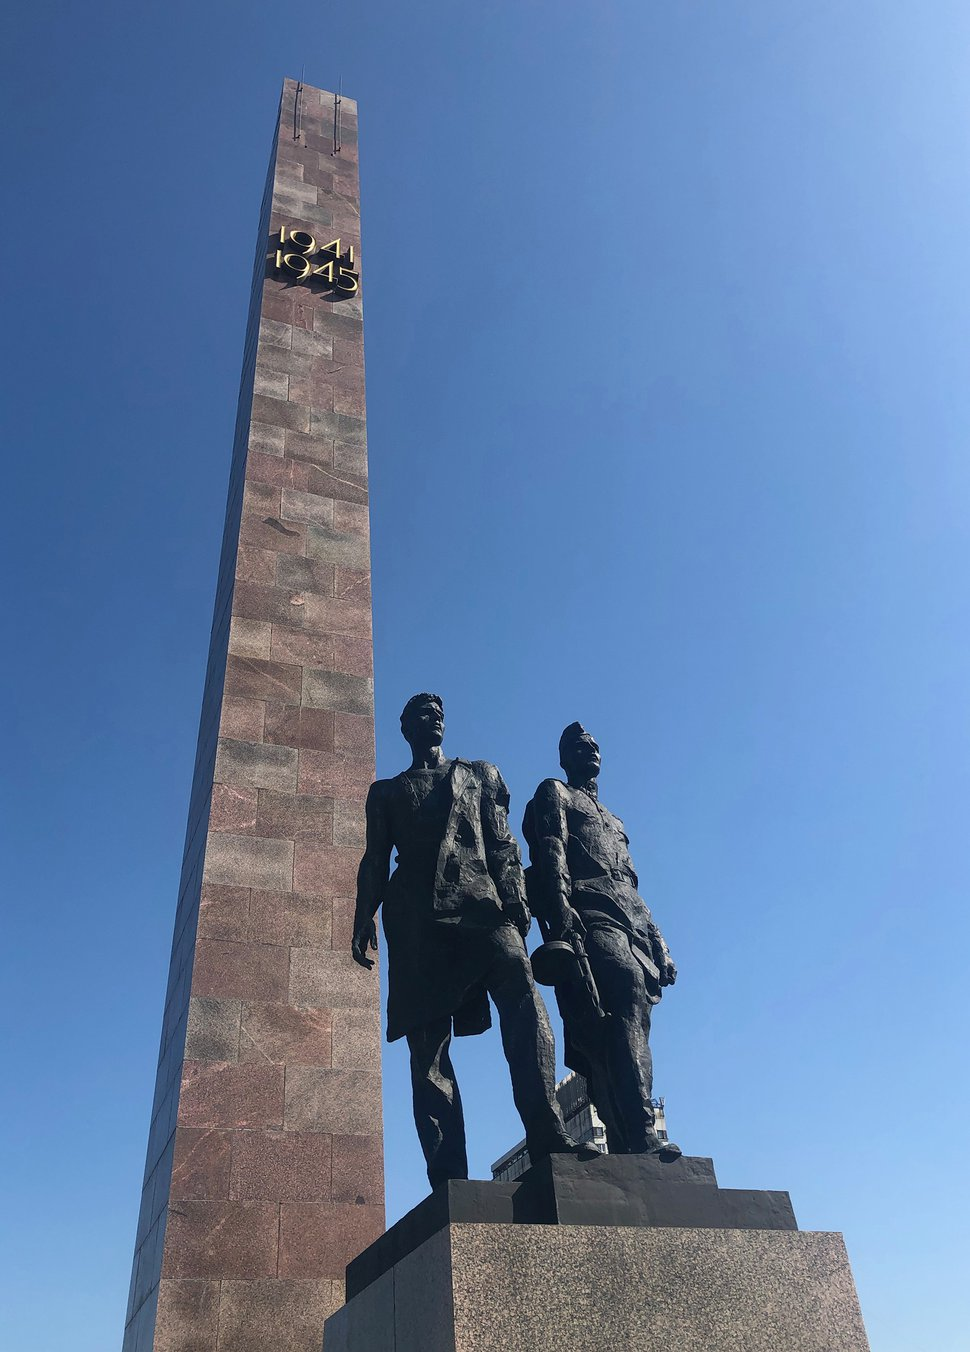 (Michael Stack | Special to The Salt Lake Tribune) Statue of Soviet citizens uniting to hold off the Nazis at the Monument to the Heroic Defenders of Leningrad in St. Petersburg.